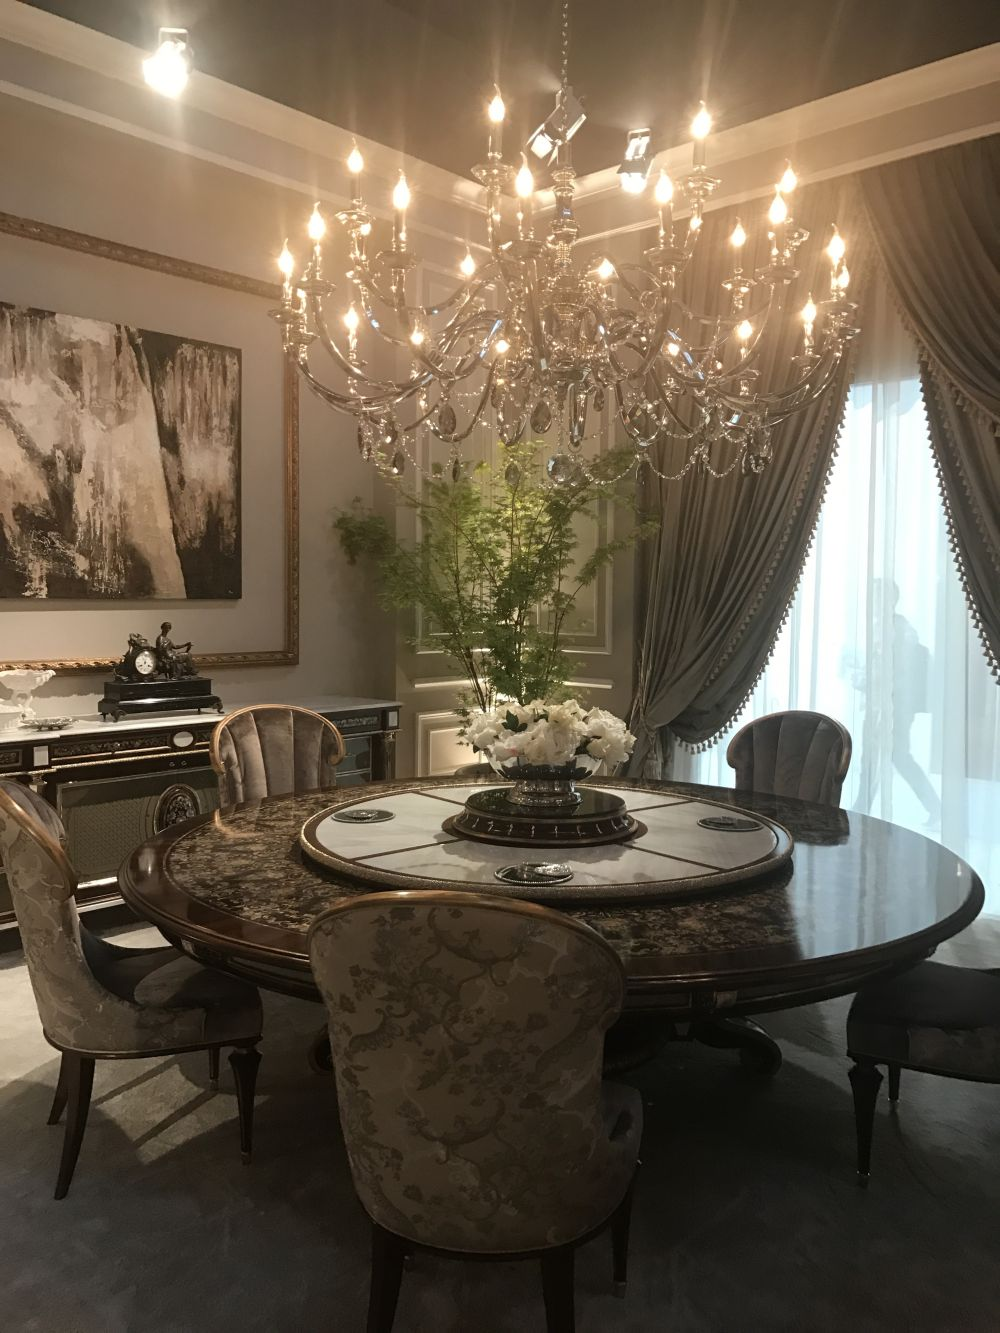 This Rococo room features a more fanciful chandelier  a marquetry table and  lighter upholstery with an Asian influence. Details Make the Difference in Baroque  Rococo Style Furniture